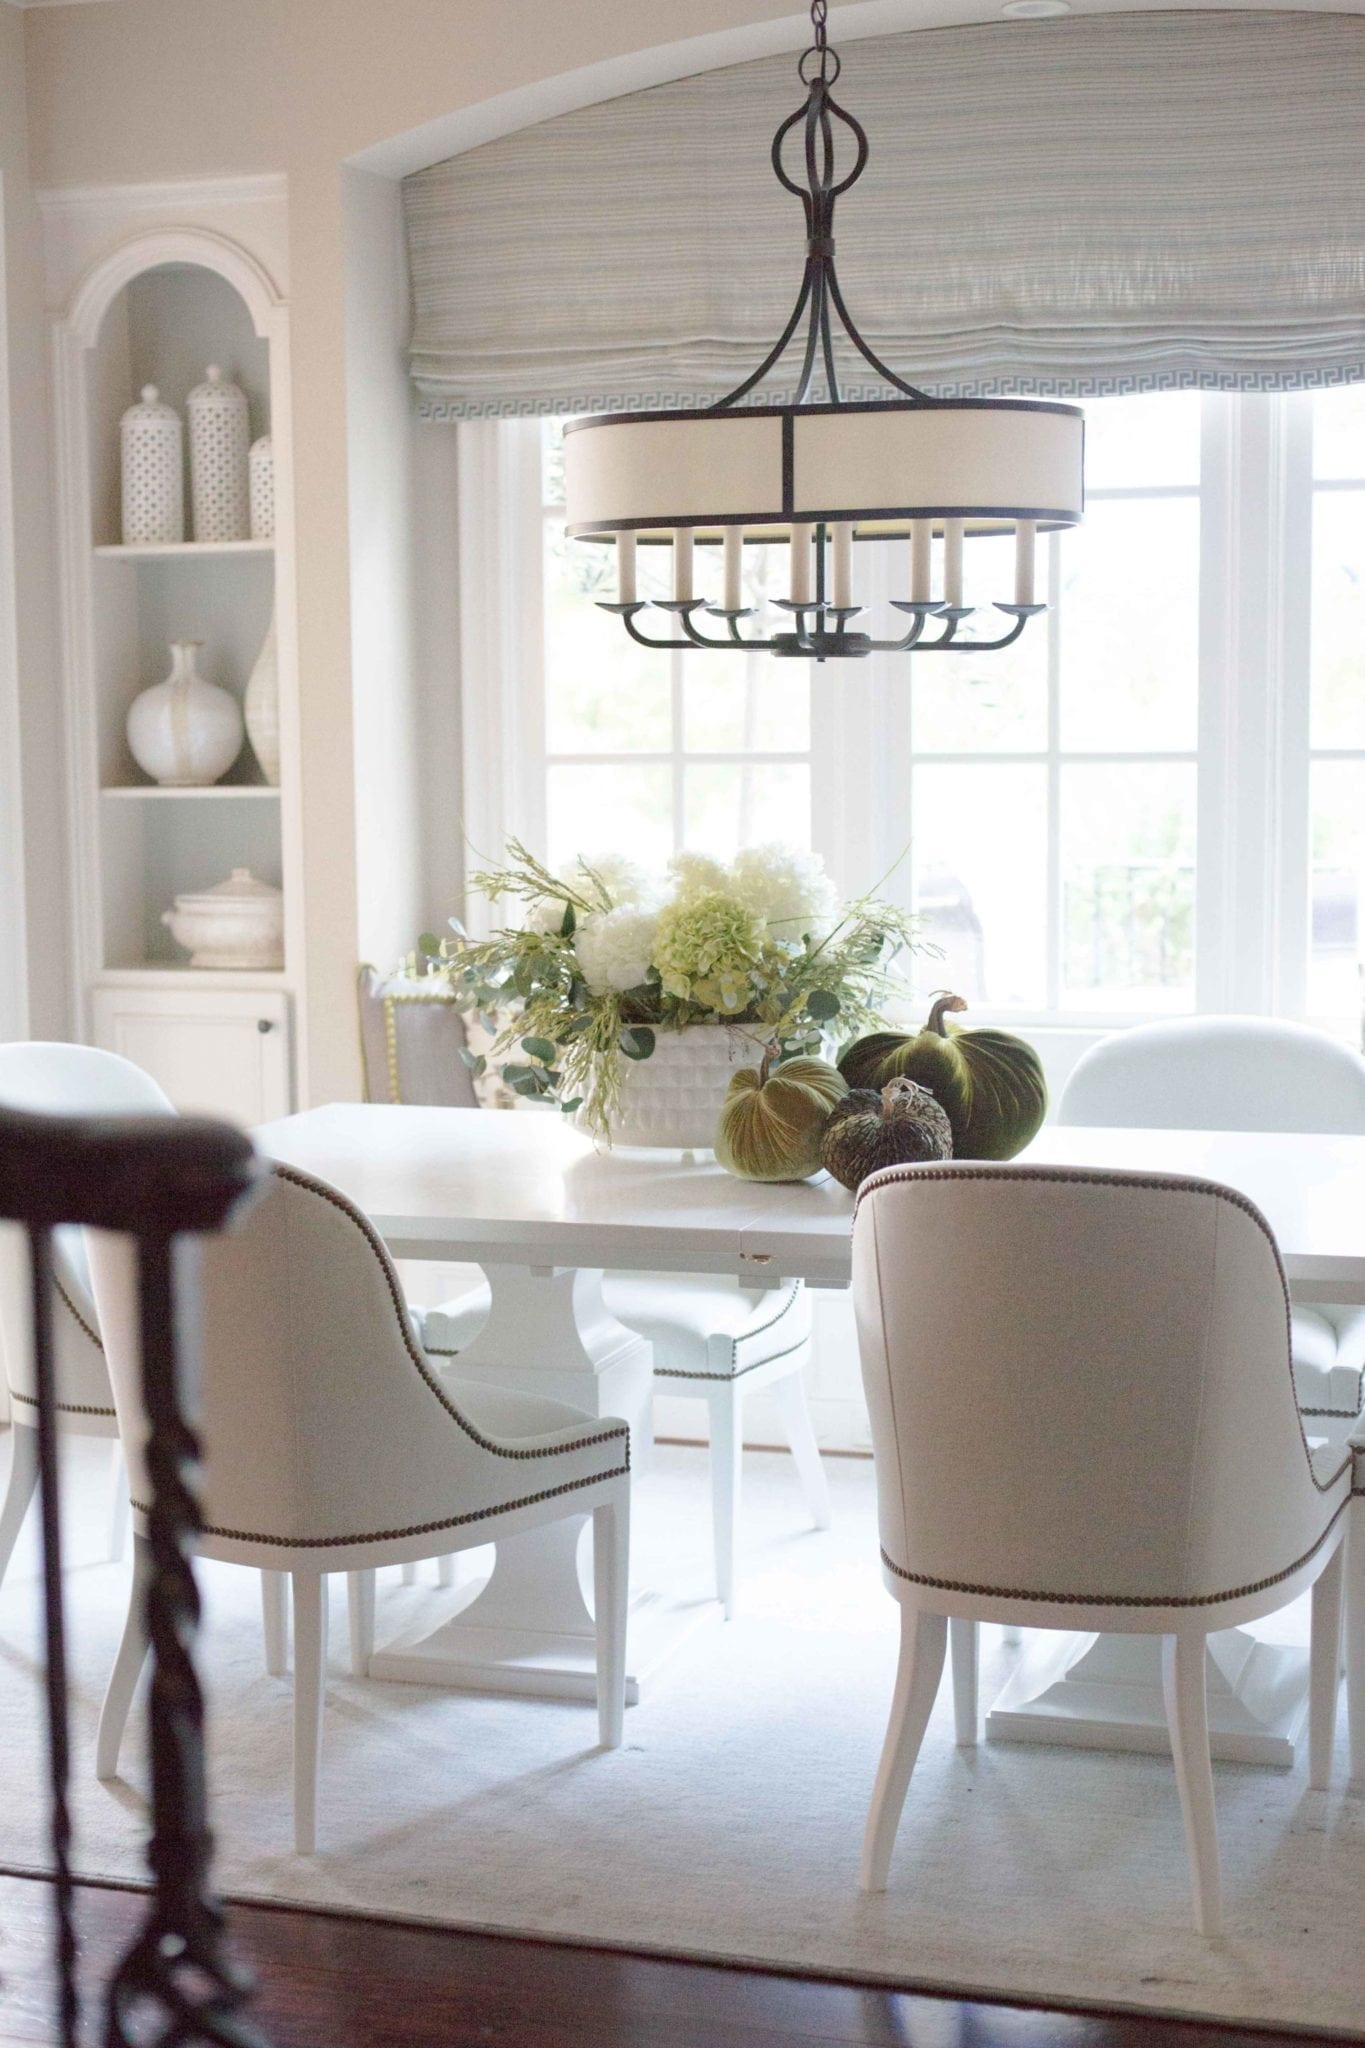 Green velvet pumpkins in white kitchen table. Pretty fall decor. White kitchen table with light blue chairs and white hydrangea arrangement for a soft and pretty fall table!